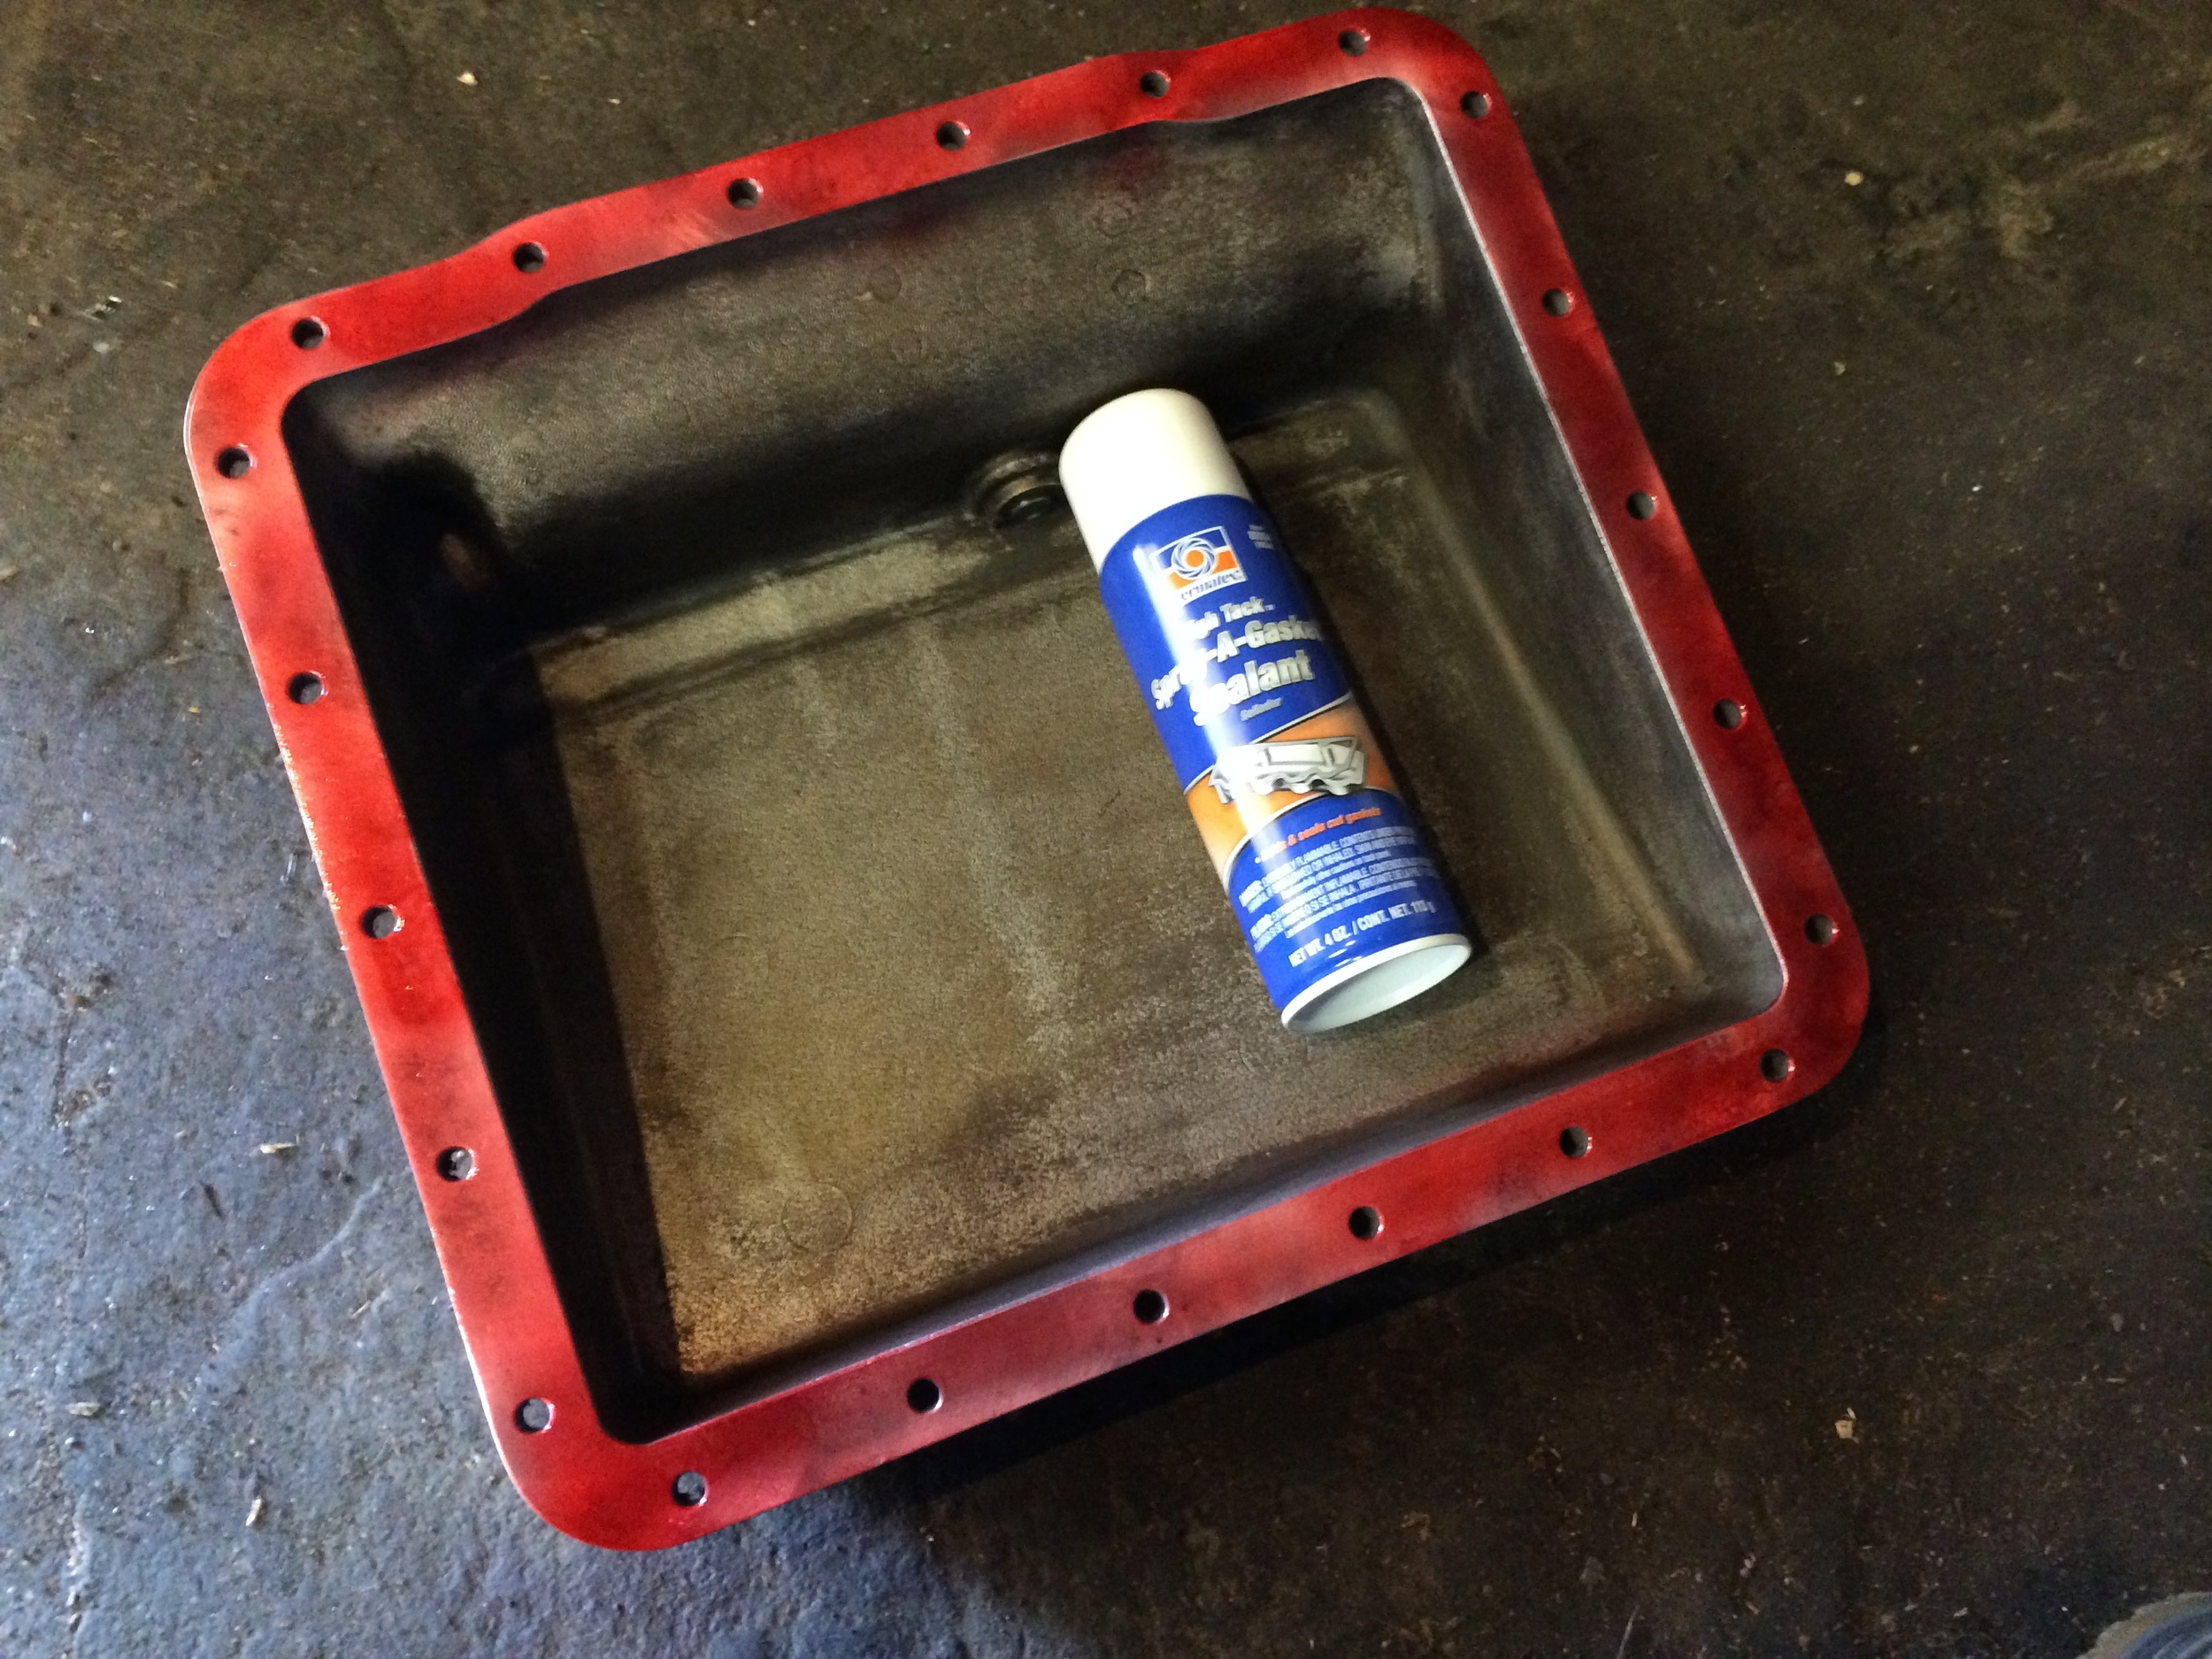 High-tack sealant applied to the mating surface on the oil pan.